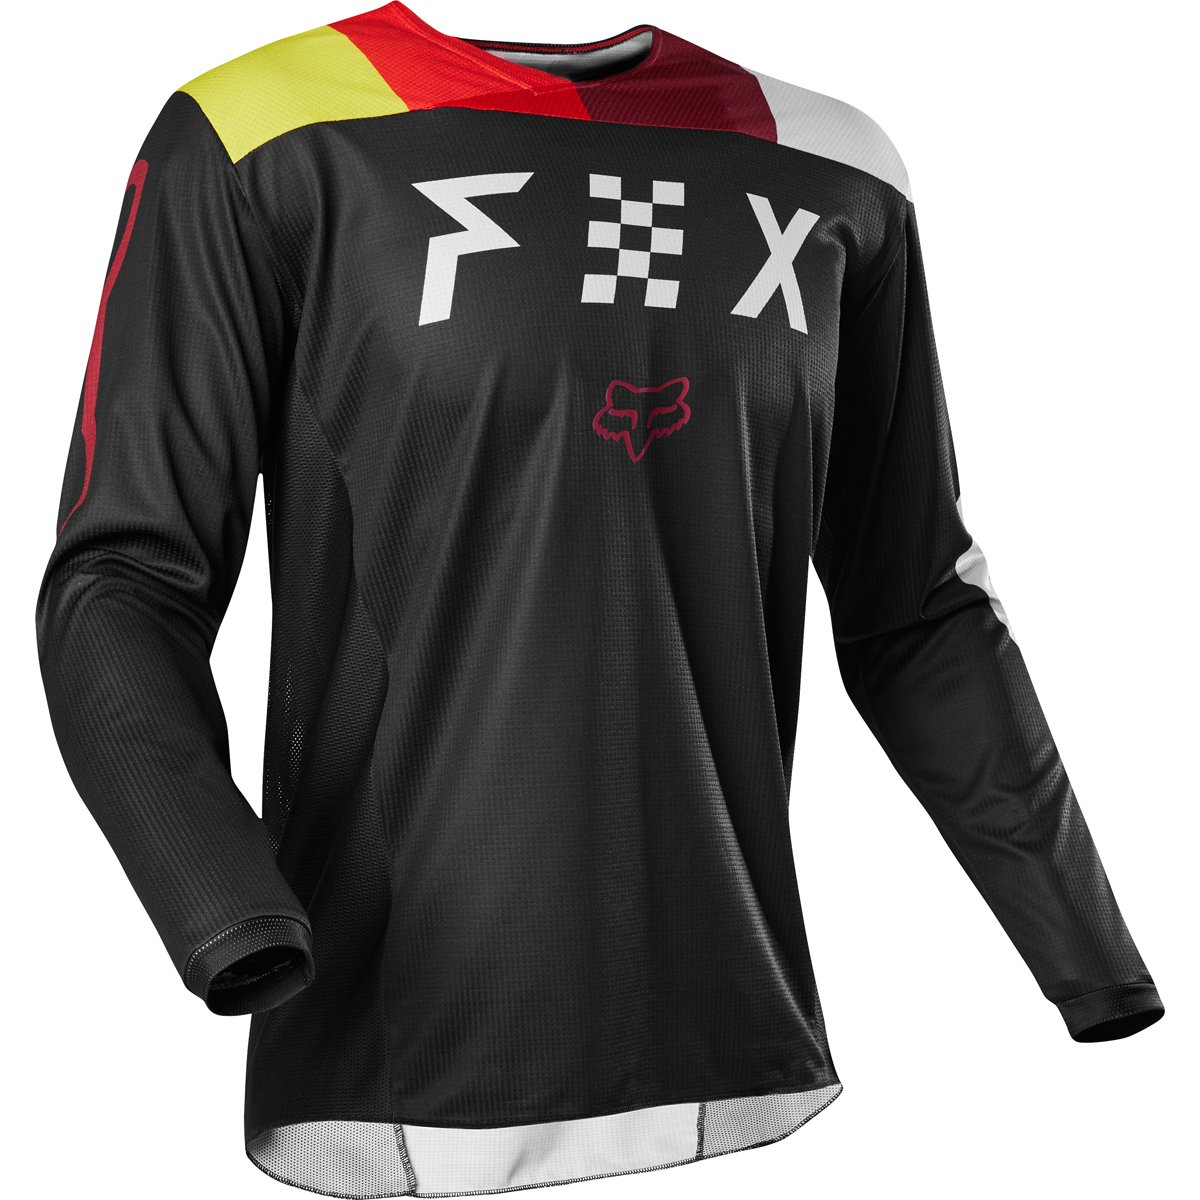 Fox Racing 2018 180 RODKA Special Edition Motocross Offroad Adult Jersey Black-Small